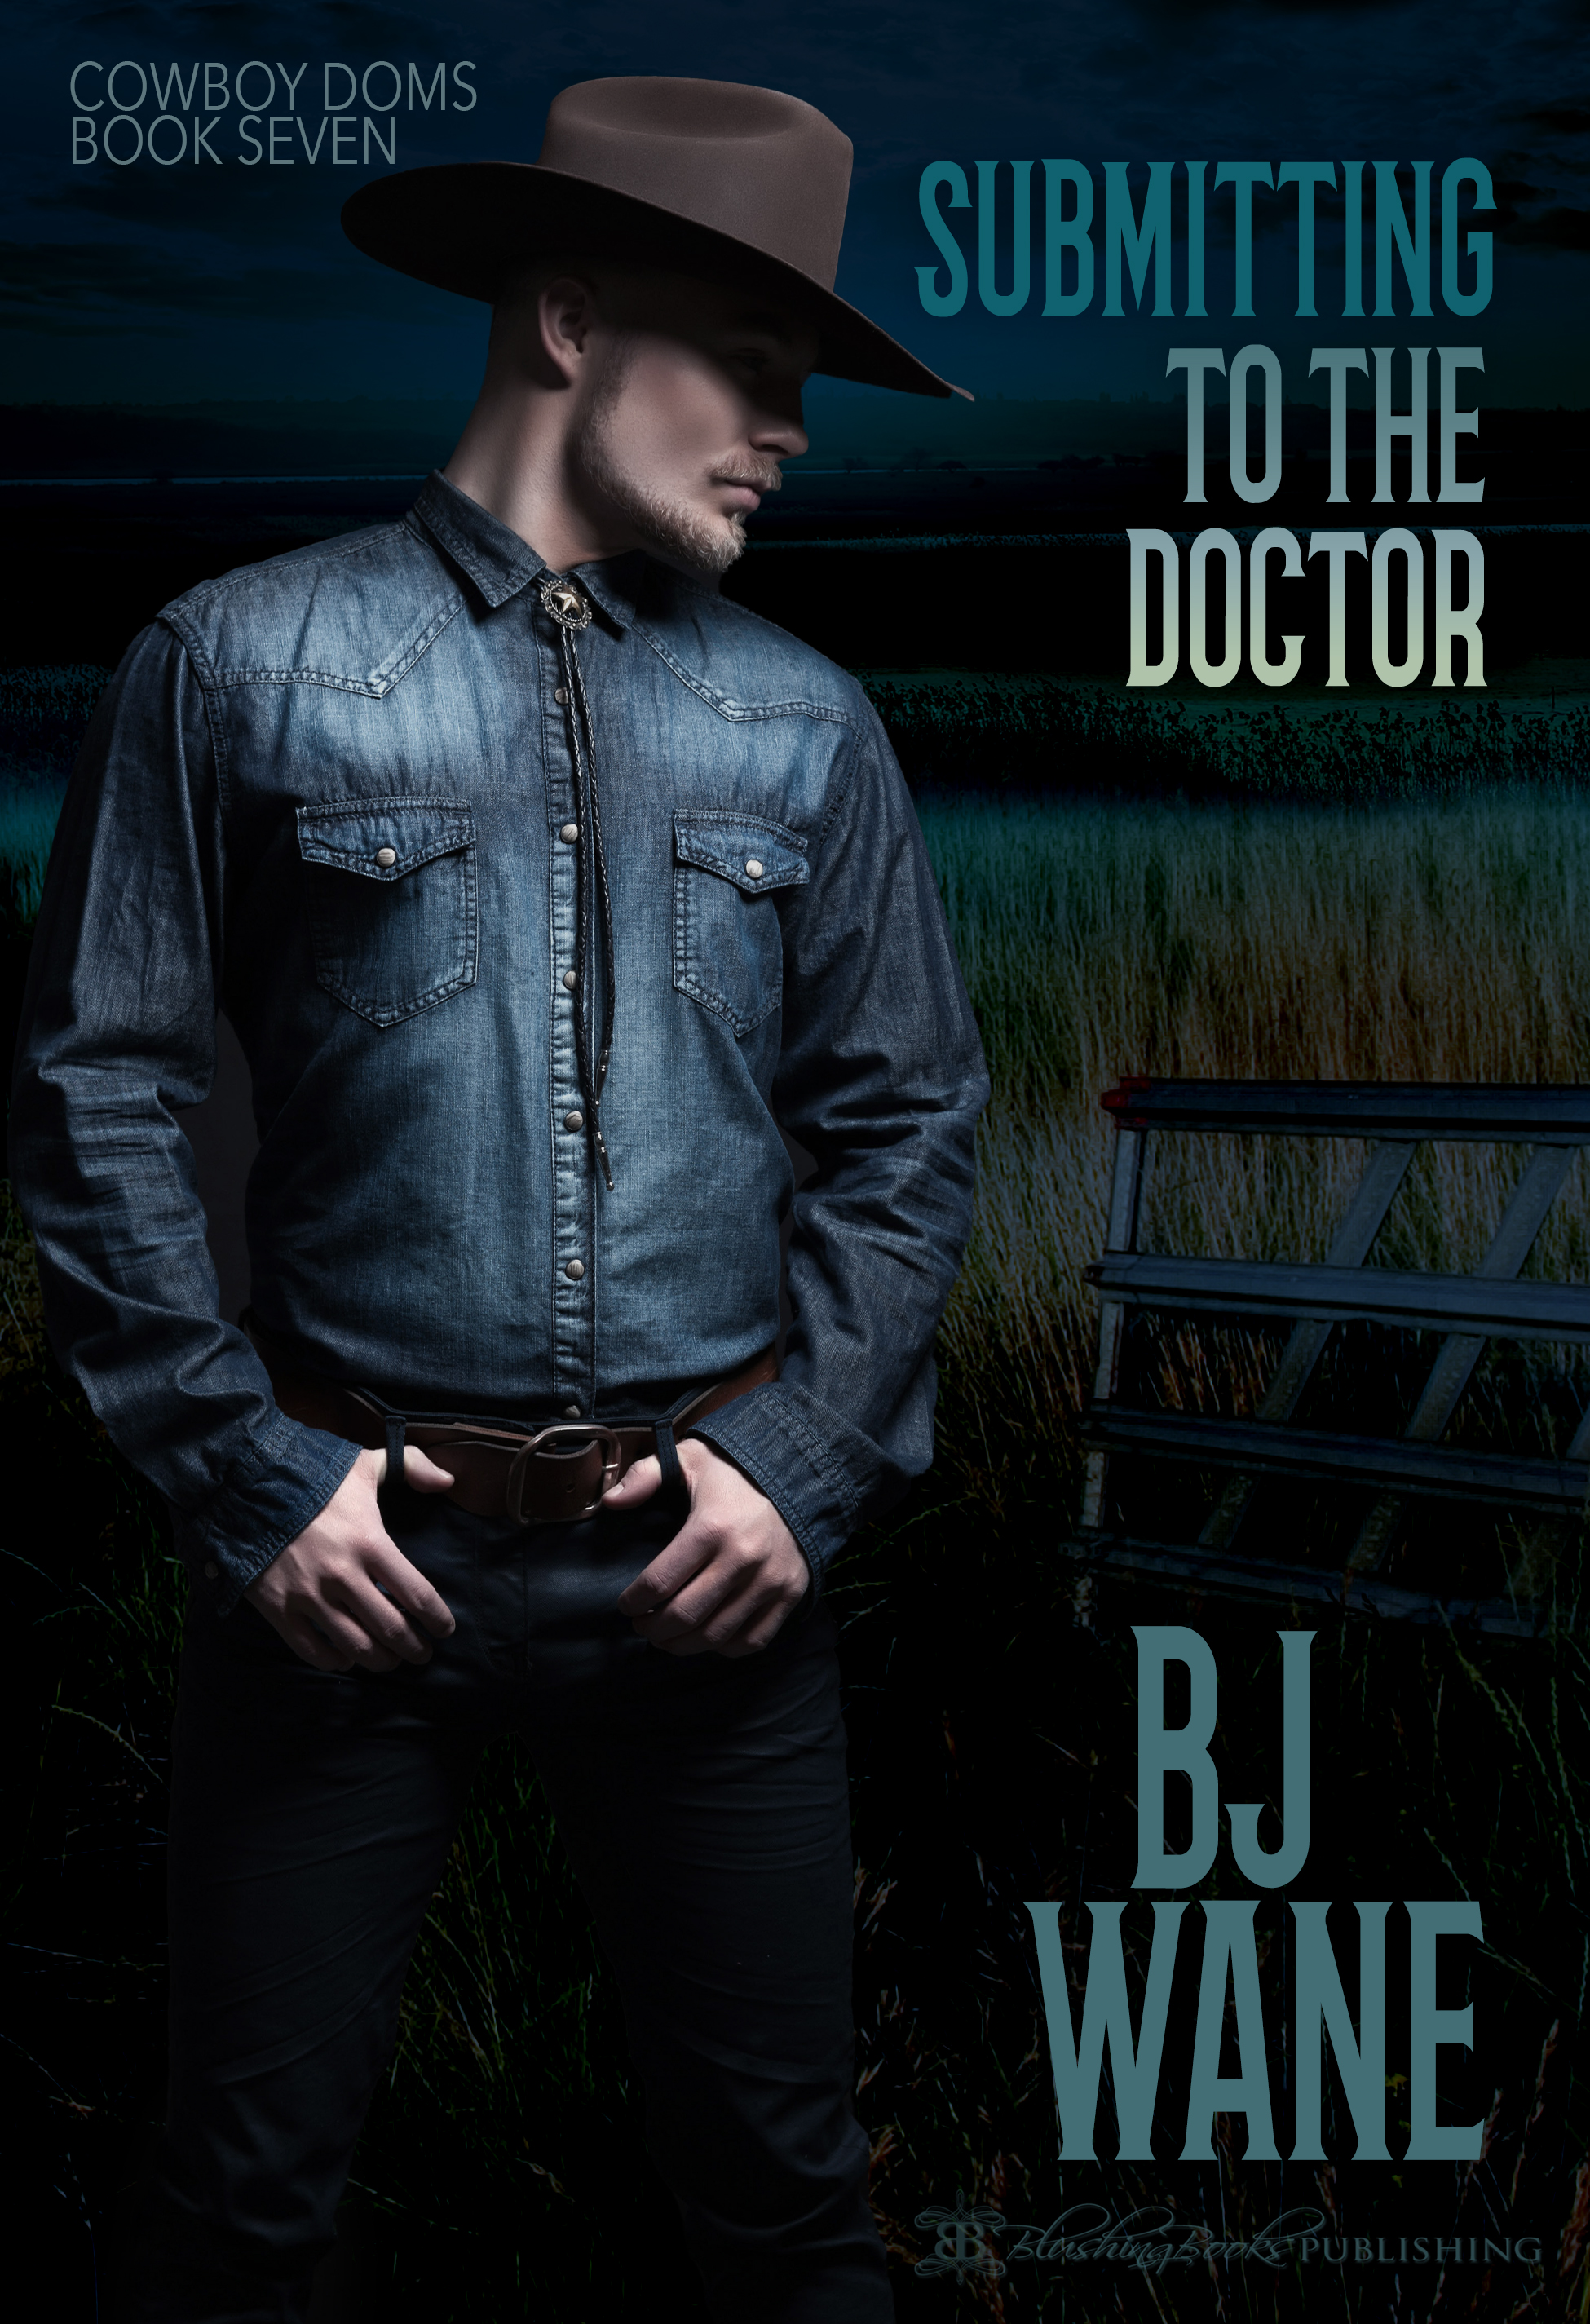 Submitting to the Doctor - BJ Cover